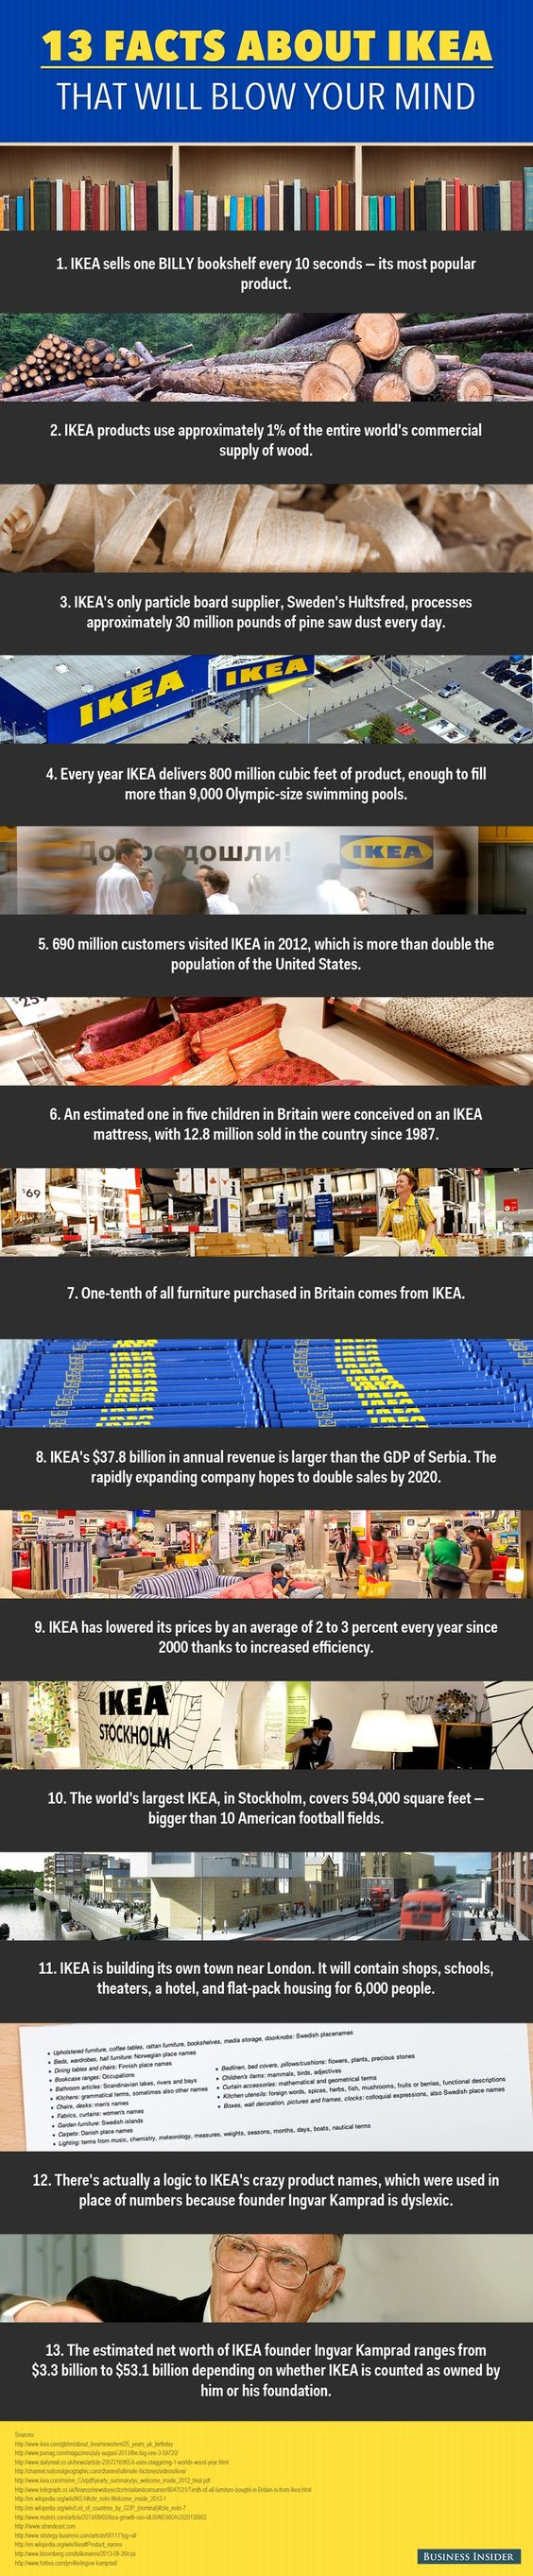 13 Facts About Ikea That Will Blow Your Mind In 2021 Infographic Facts Fun Facts